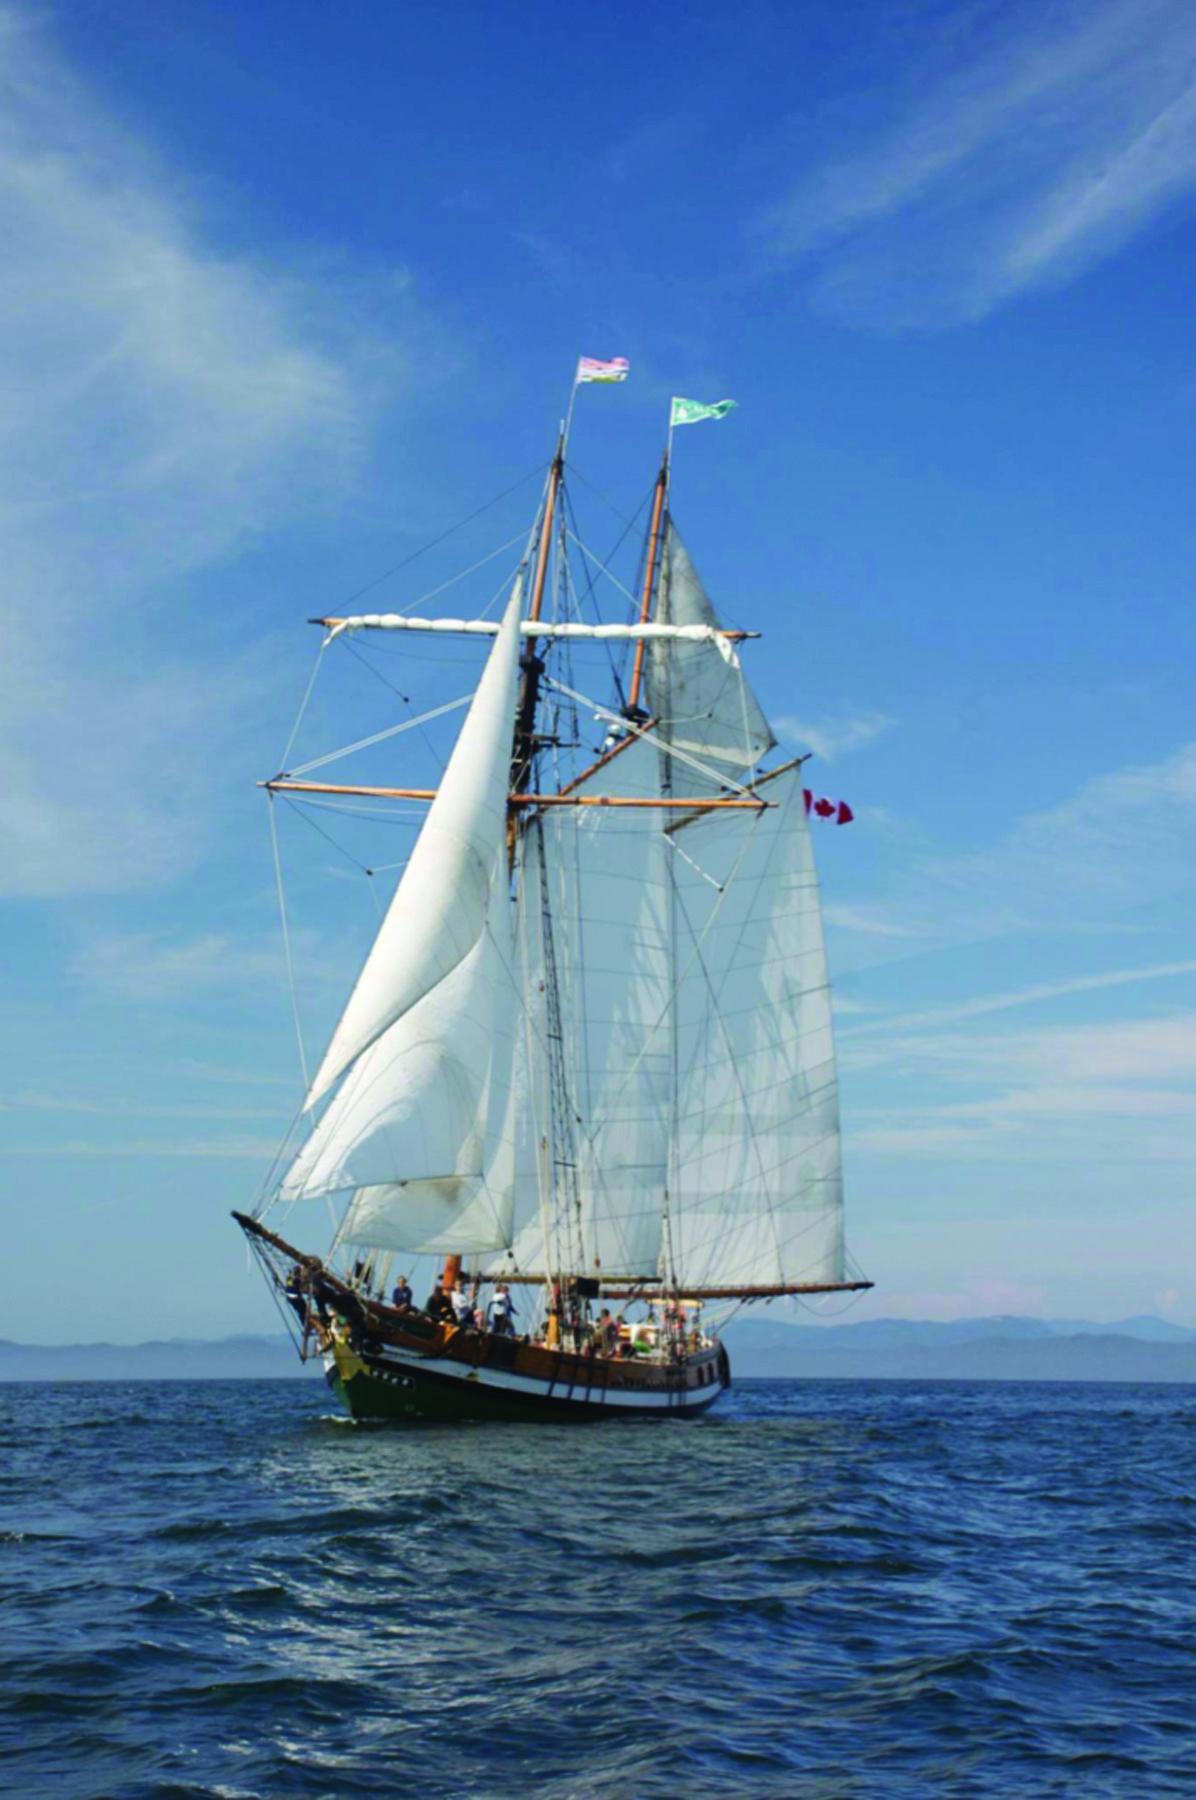 Tall Ships are large traditionally-rigged sailboats that move through the water with the thrust of the wind. It takes a high level of skill and teamwork to navigate such a ship on the high seas. (Canadian Cadet Organizations)